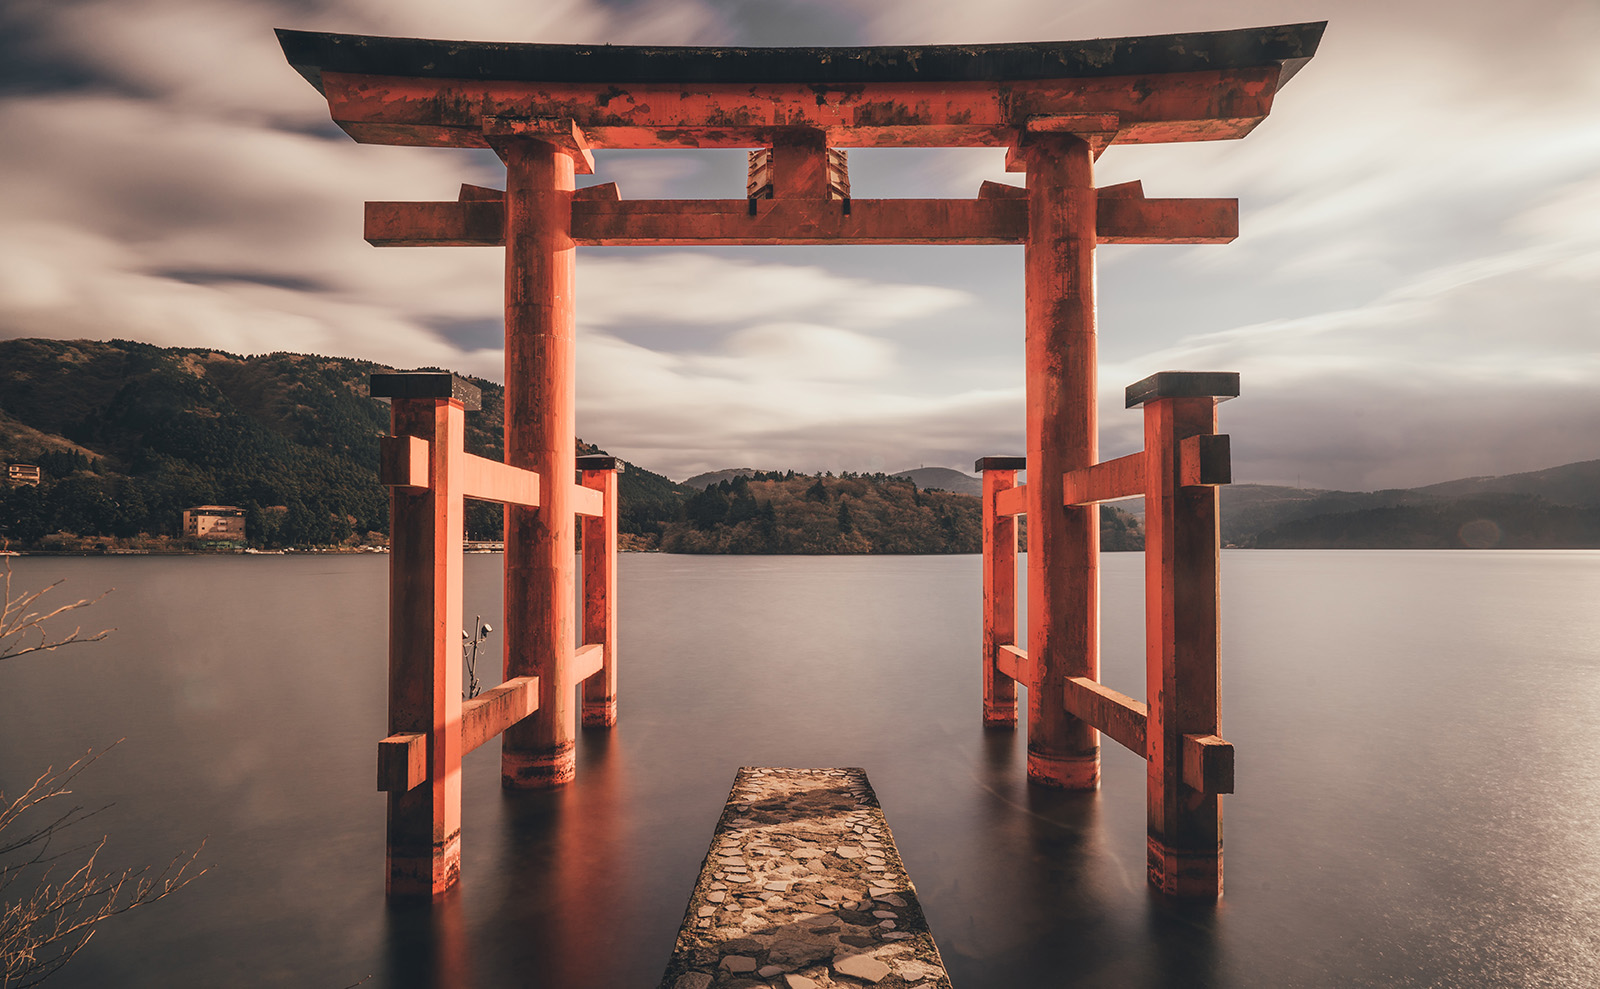 red shrine in the water in Hakone, Japan.